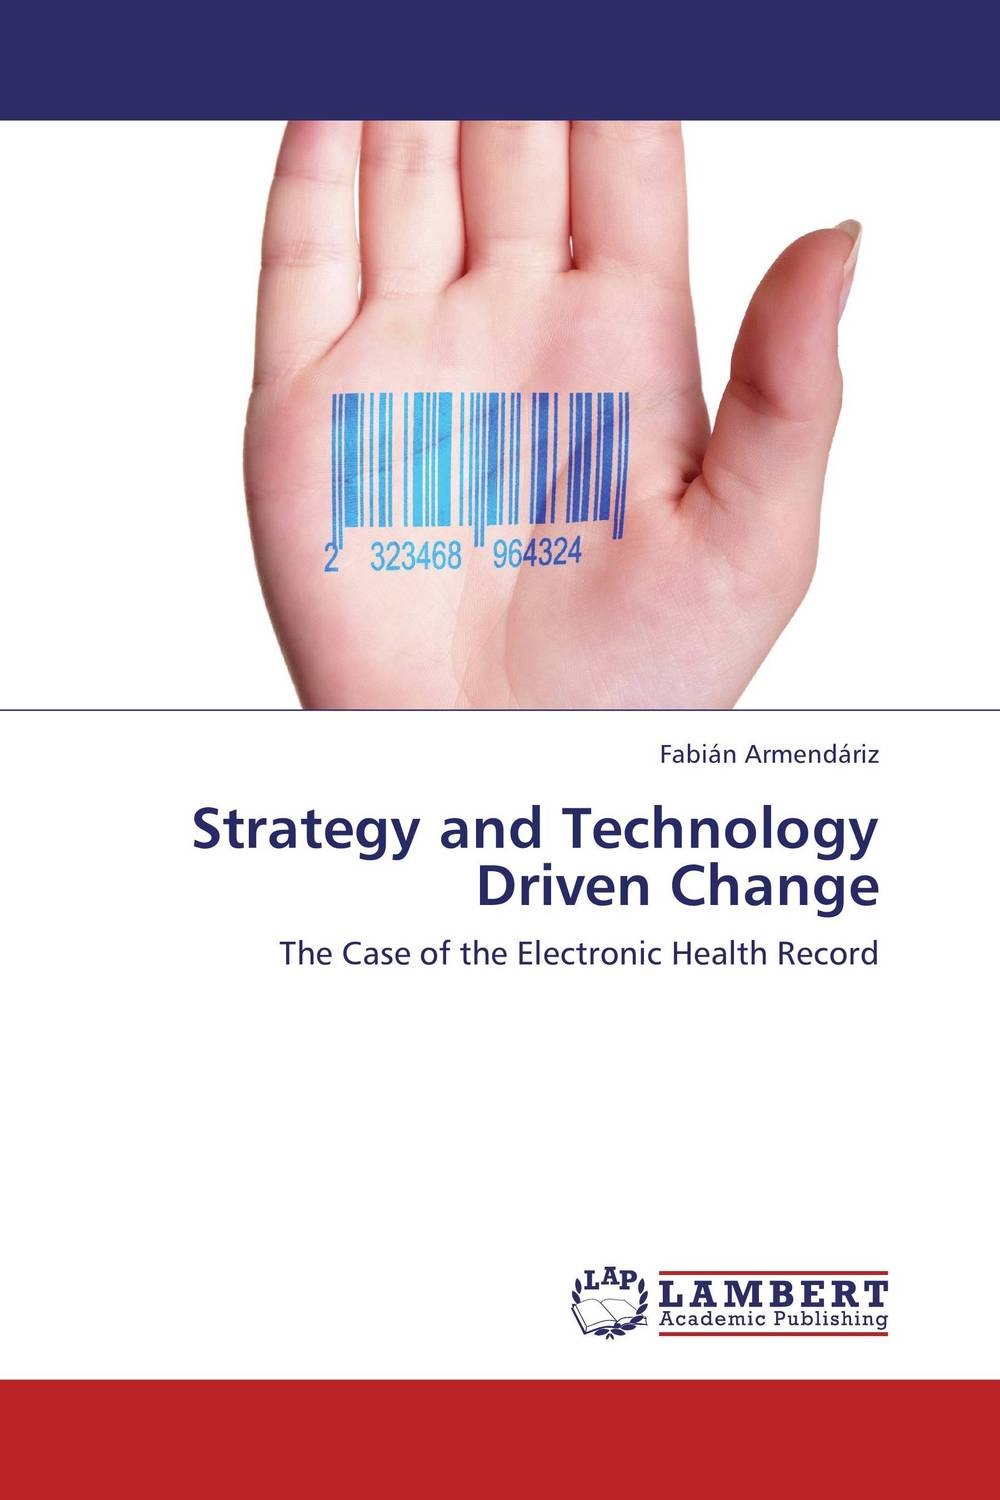 Strategy and Technology Driven Change driven to distraction